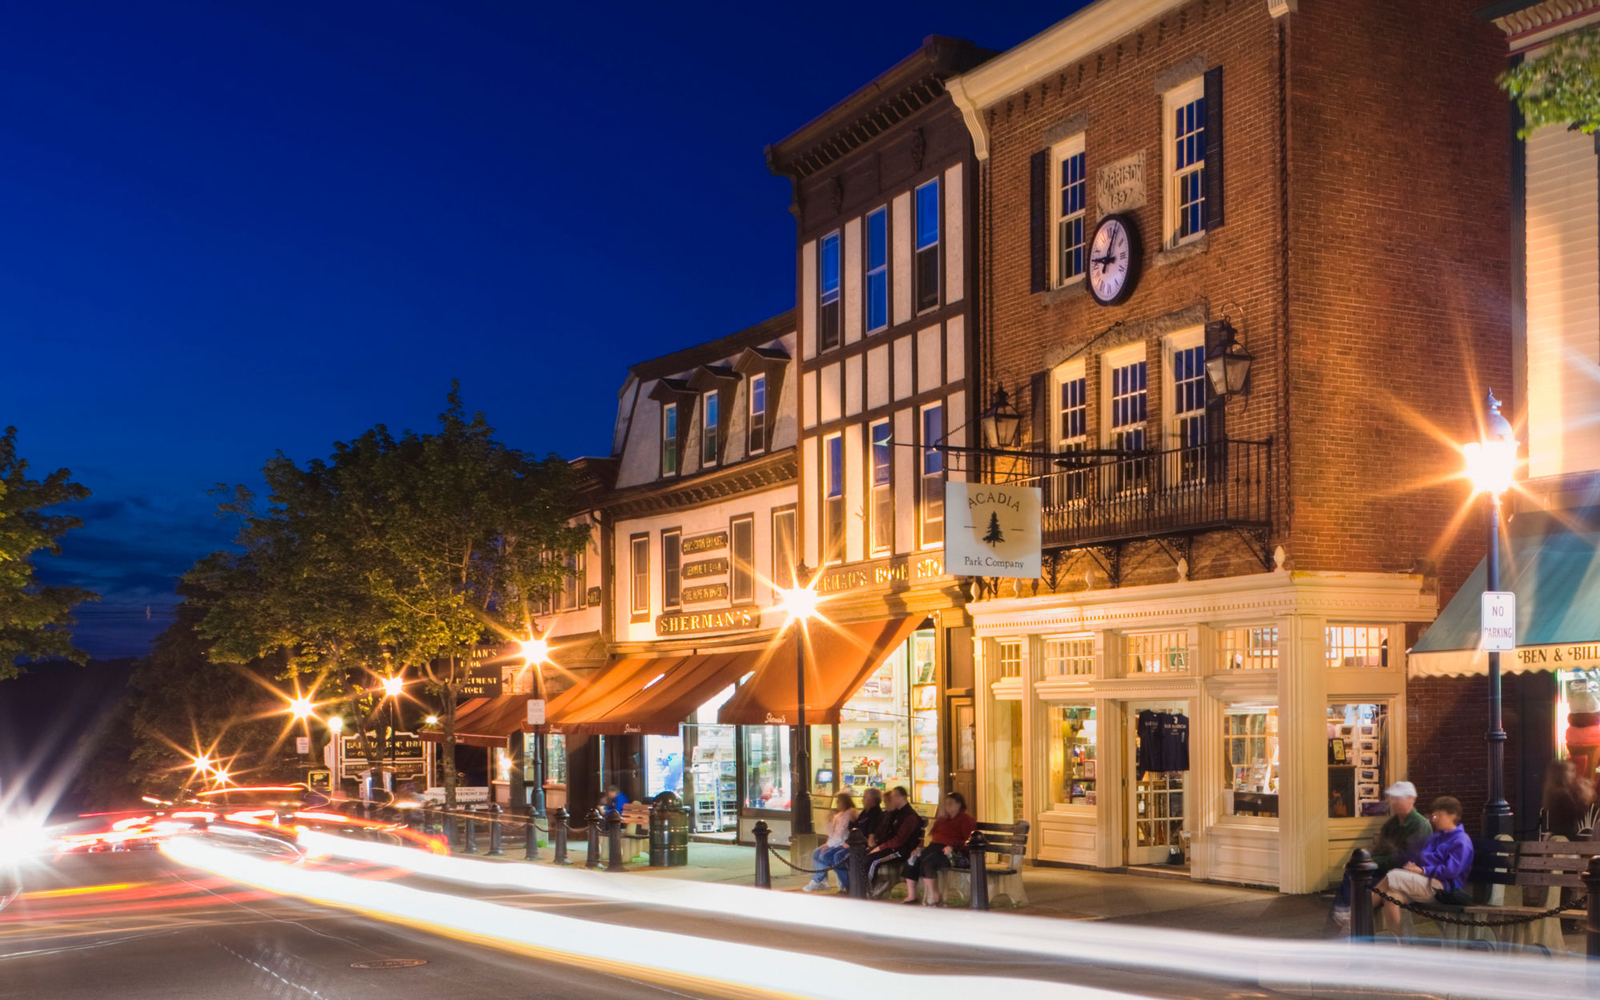 main street in Bar Harbor, Maine at night